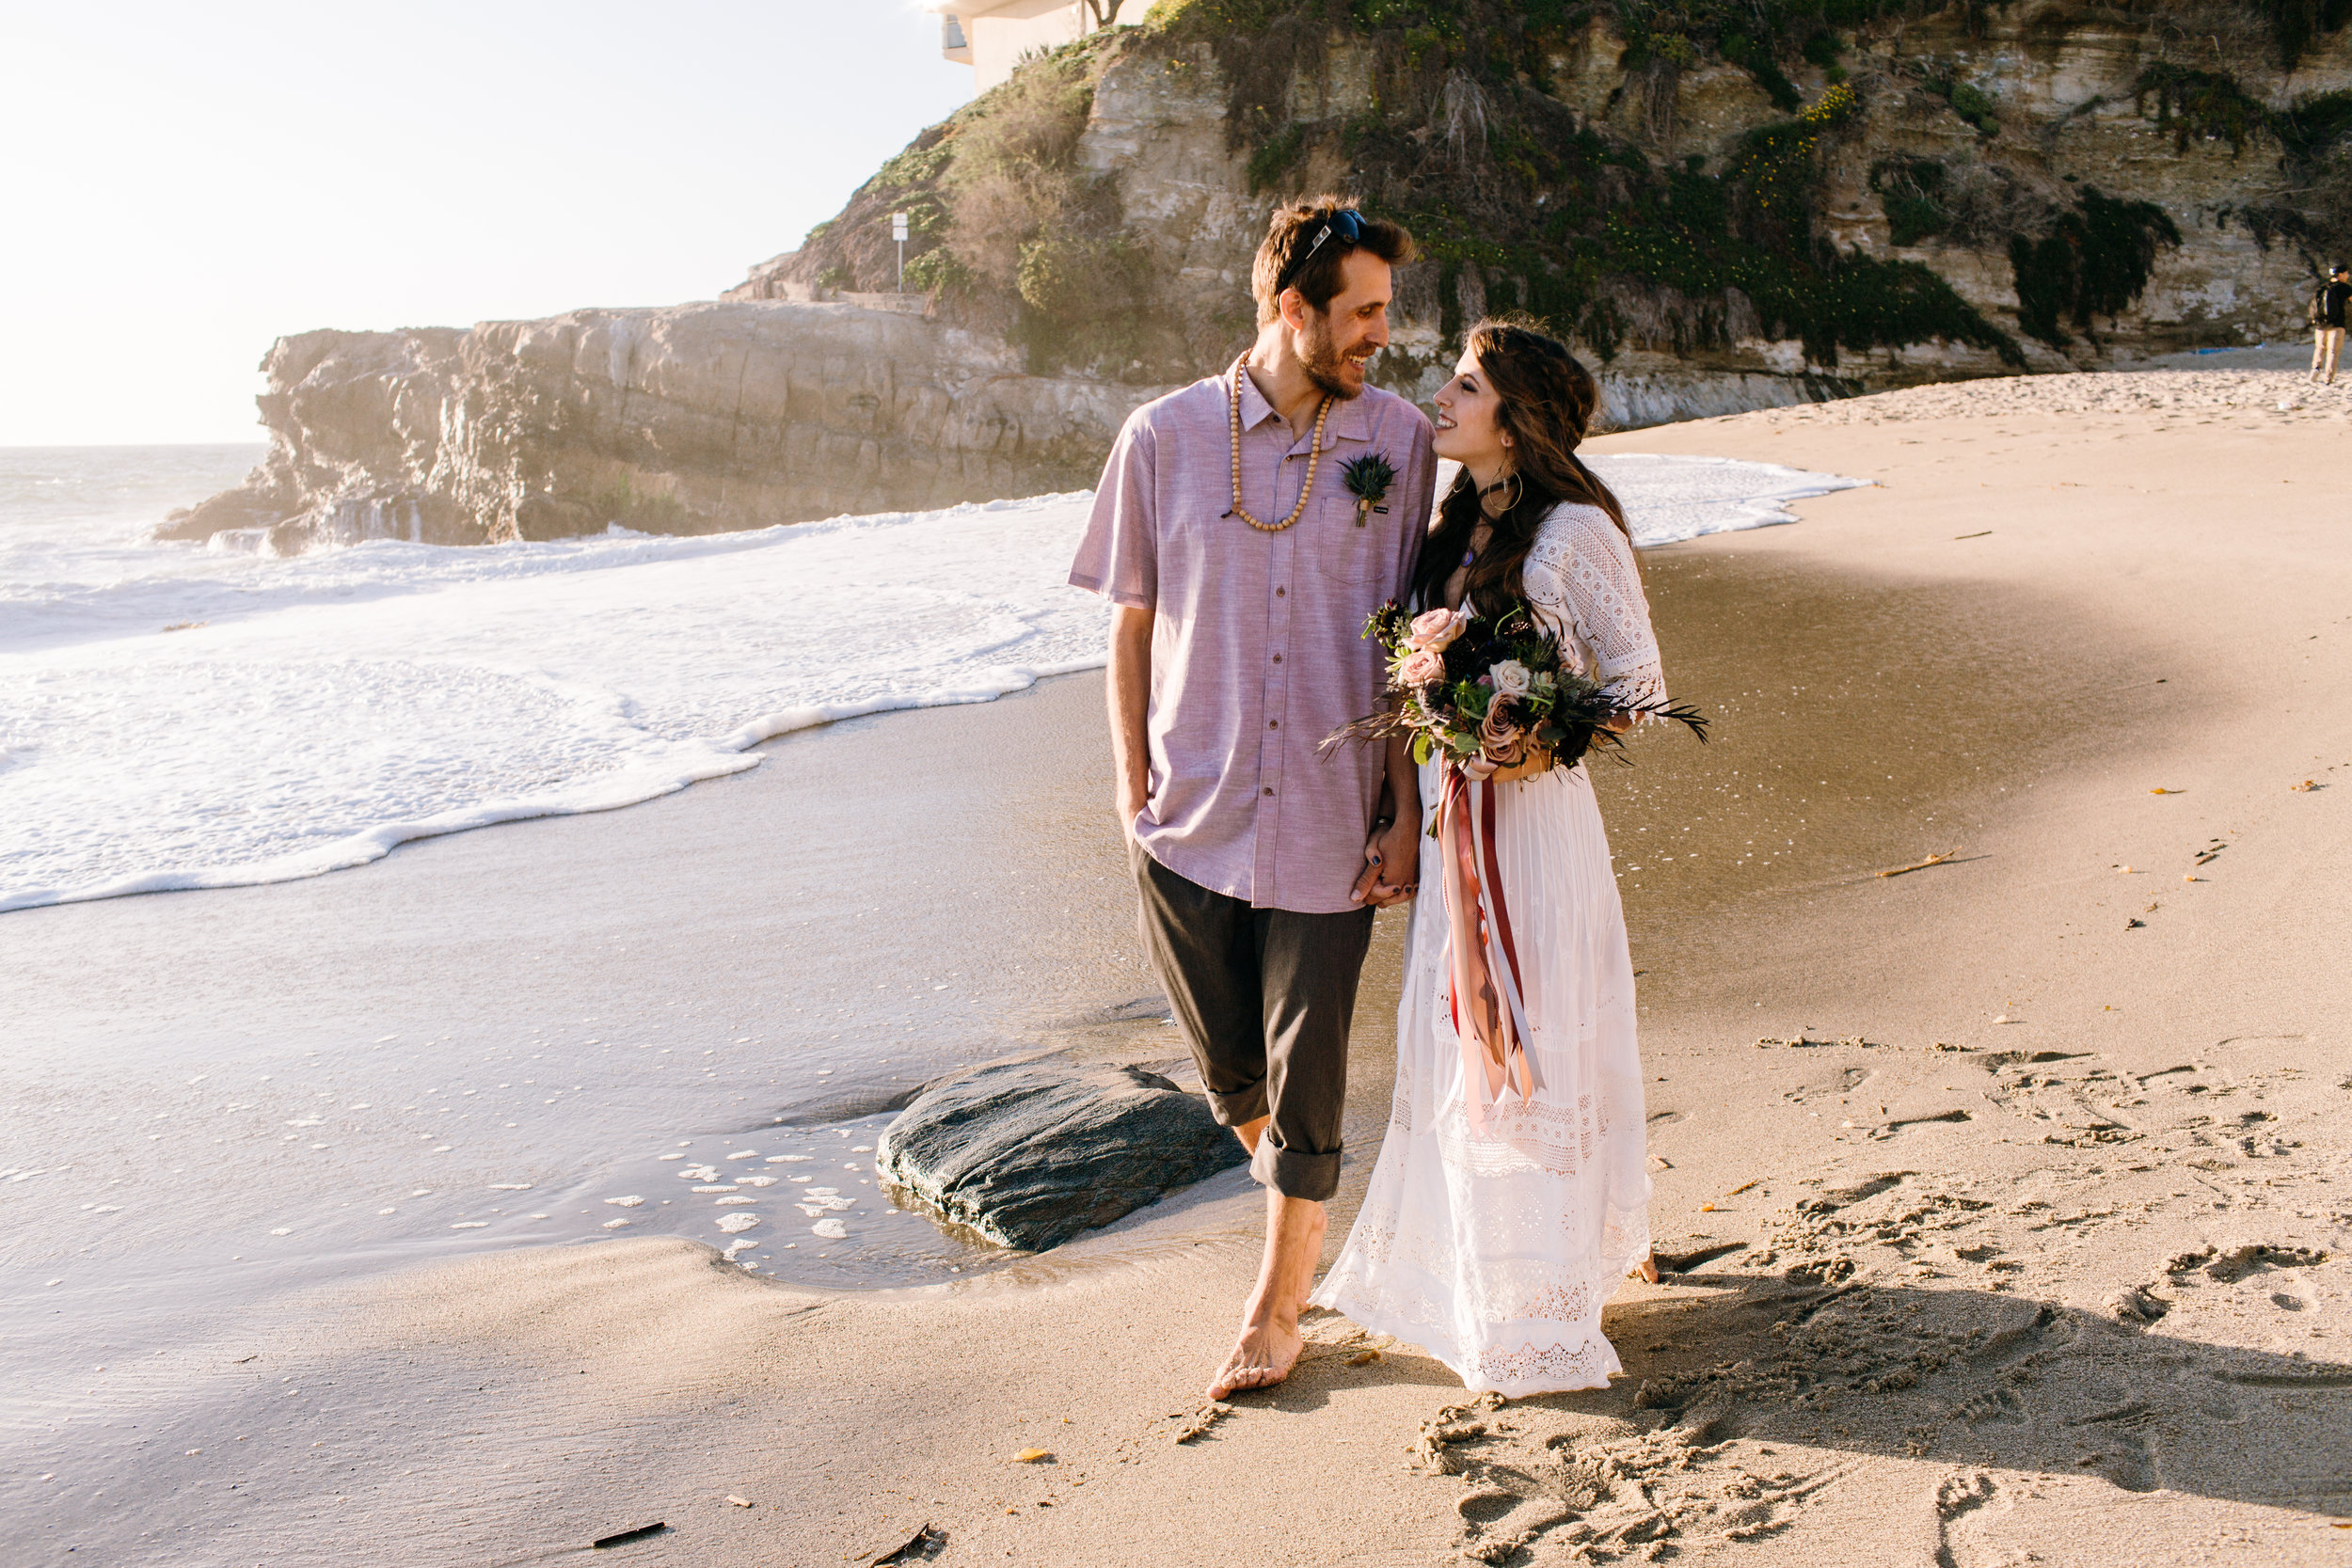 KaraNixonWeddings-LagunaBeach-Tablerock-Elopement-37.jpg